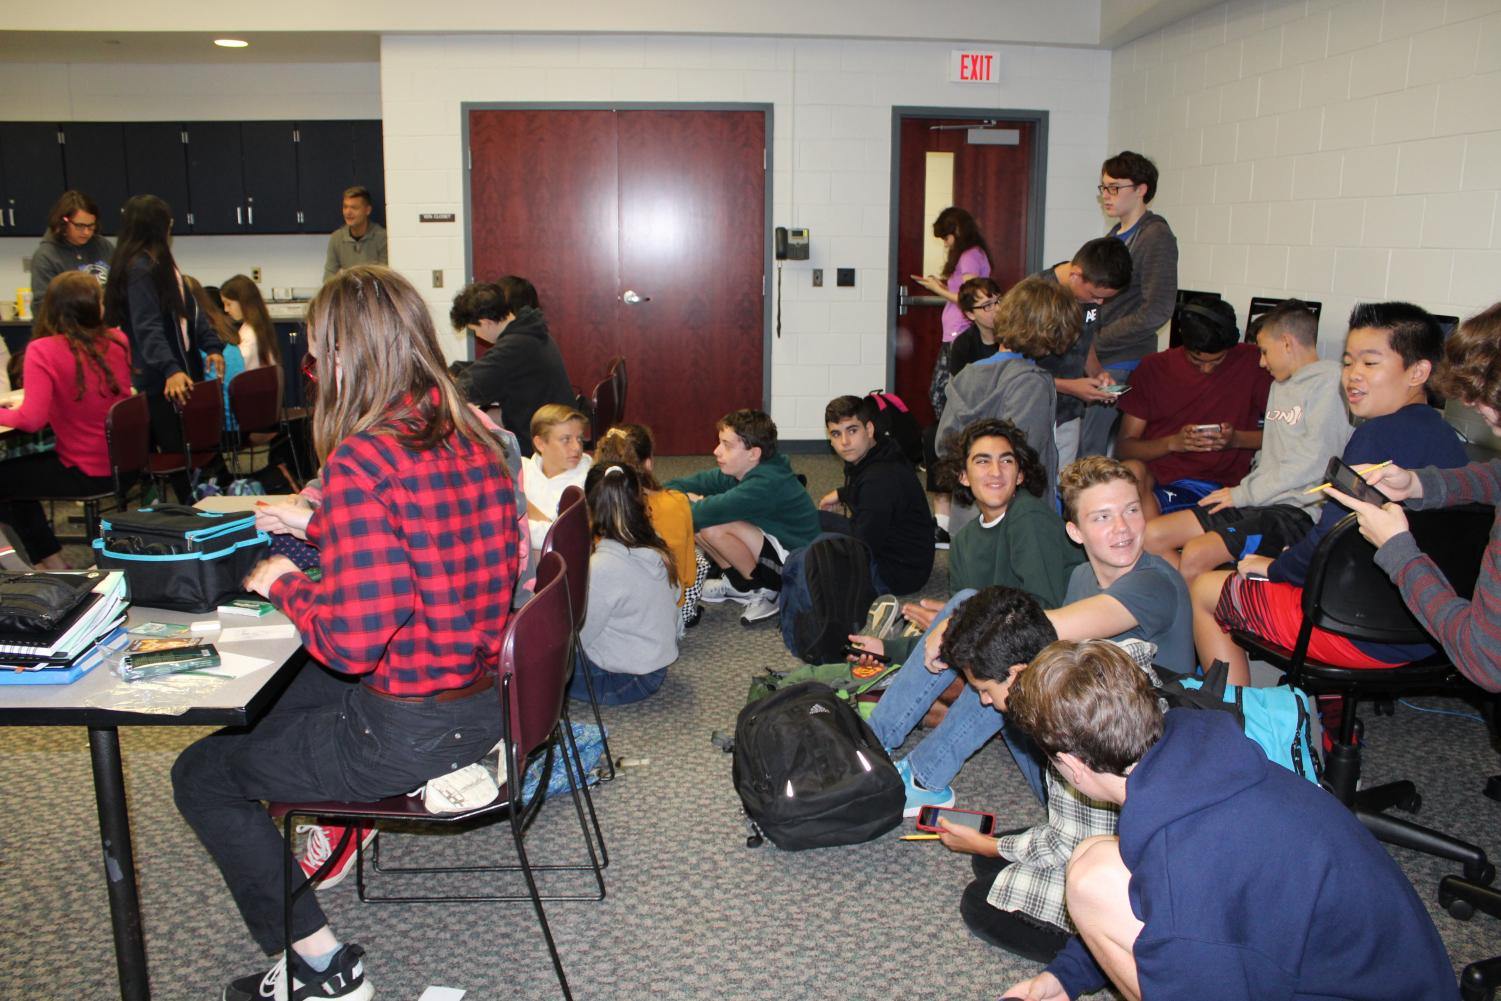 The Class of 2022 gathered in room 107 for freshman council elections on Oct. 5.